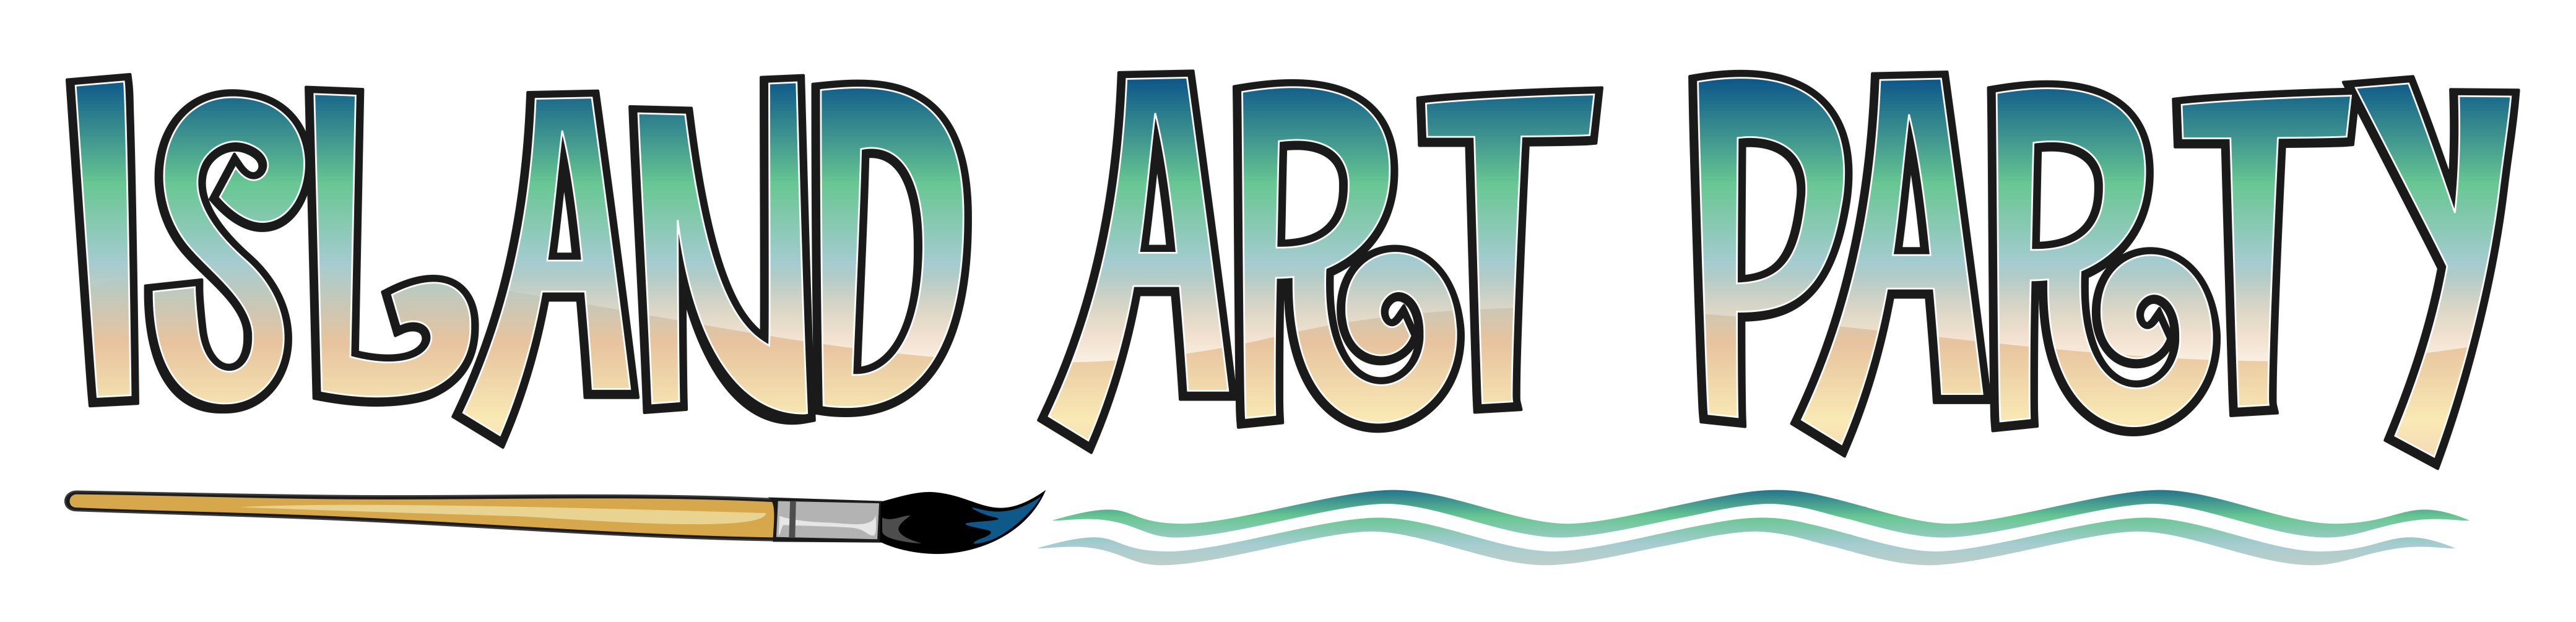 Island Art Party Logo